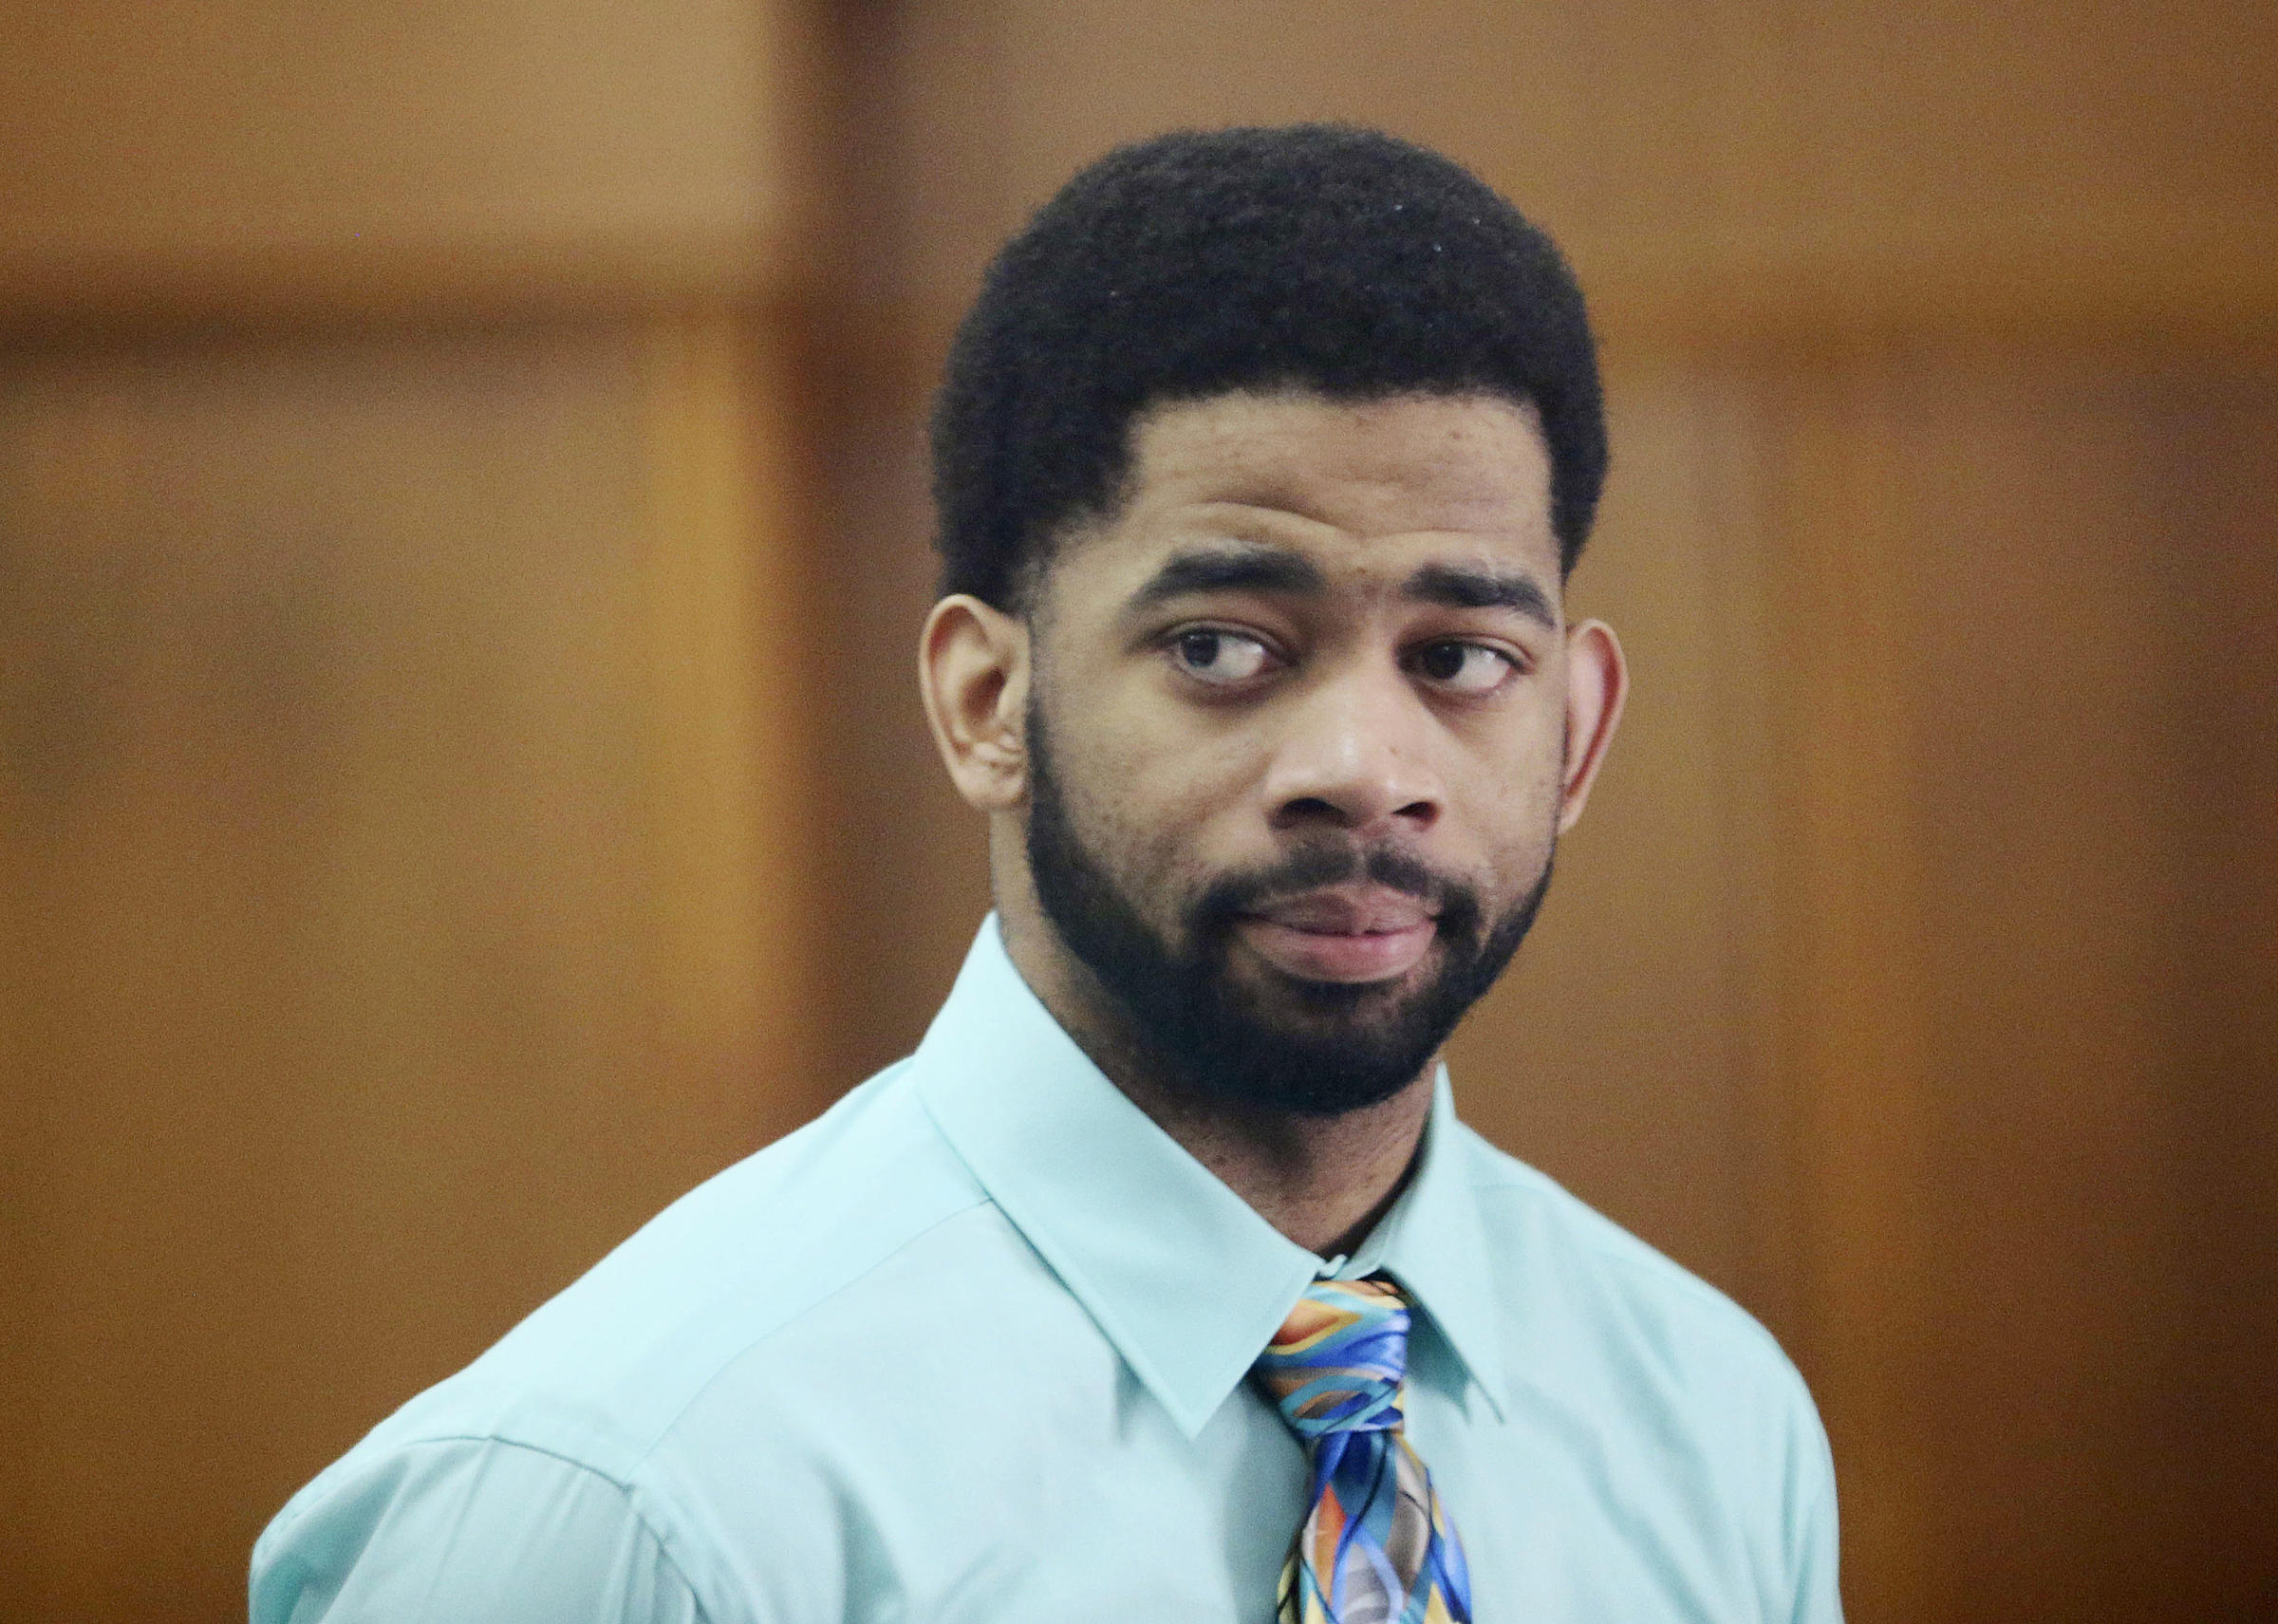 Former Milwaukee police officer found not guilty in fatal shooting